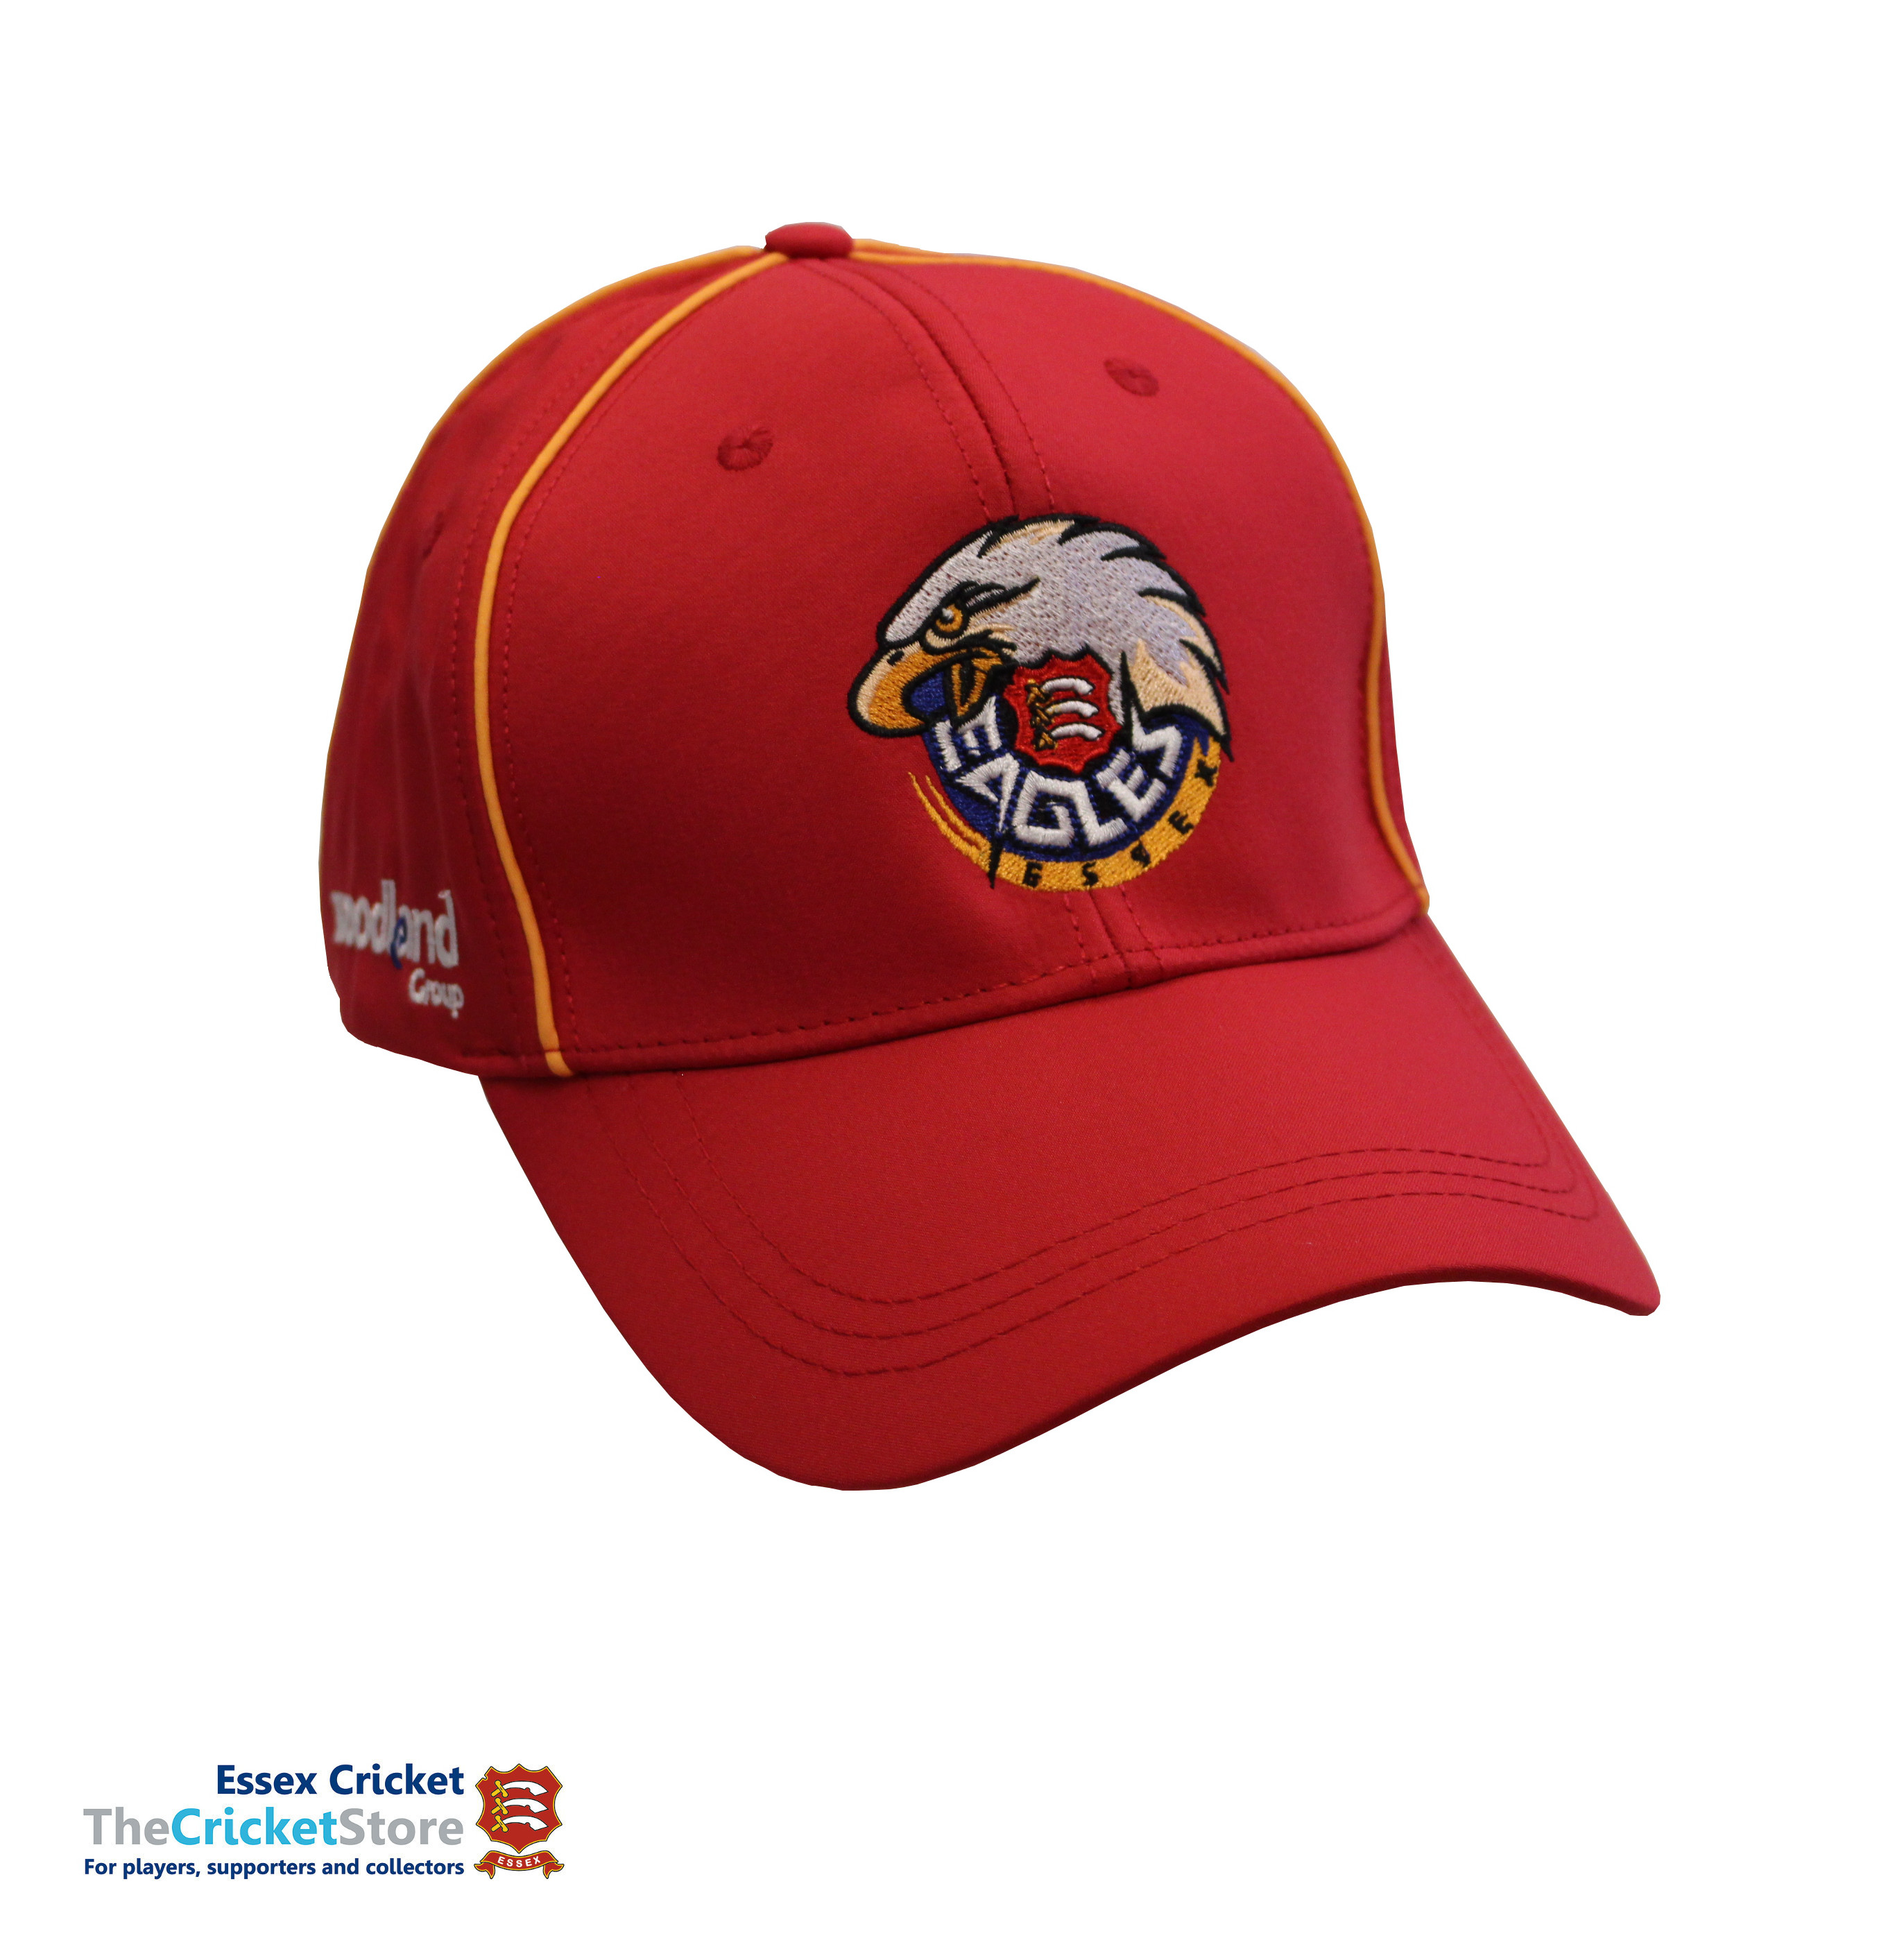 2018 Royal London One-Day Cup Cap – The Cricket Store at Essex Cricket 38e3c724352b5